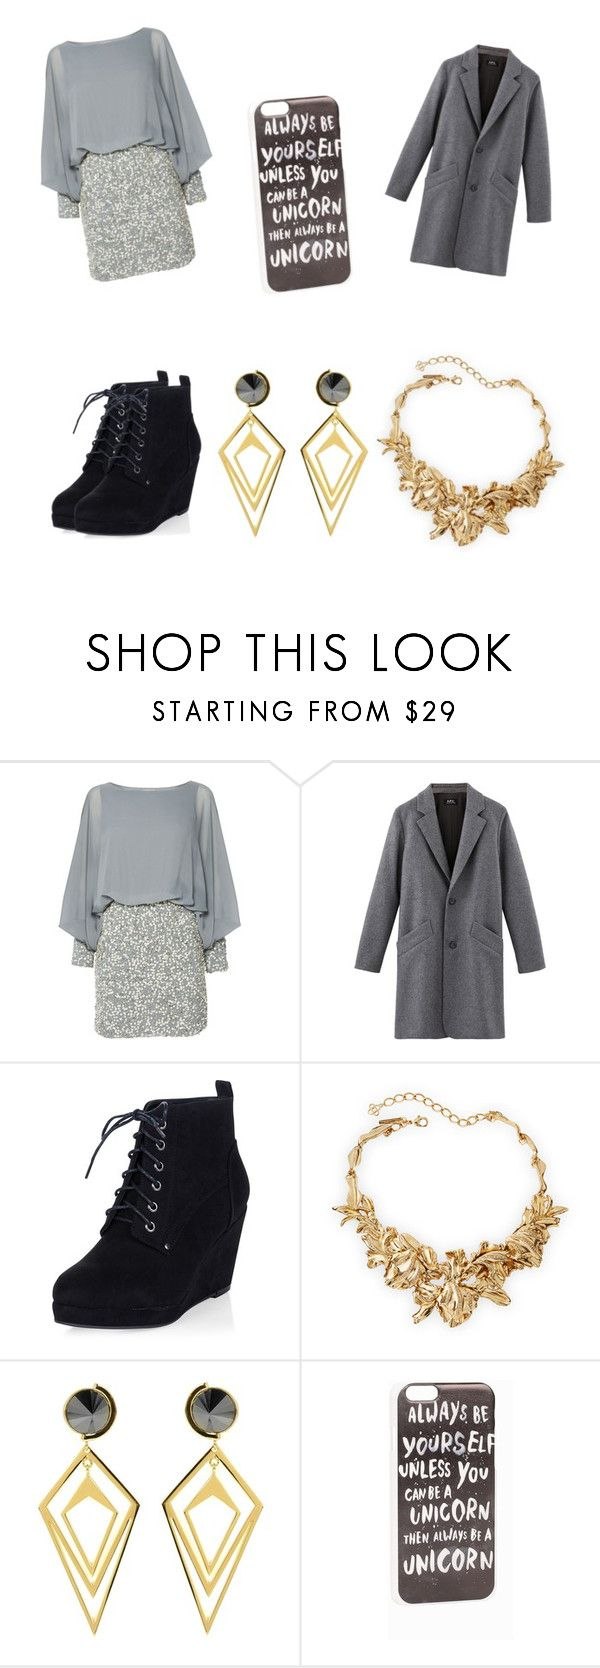 """""""#12"""" by bts-got7-block-b ❤ liked on Polyvore featuring Lace & Beads, Oscar de la Renta, Sarah Magid, JFR, women's clothing, women, female, woman, misses and juniors"""